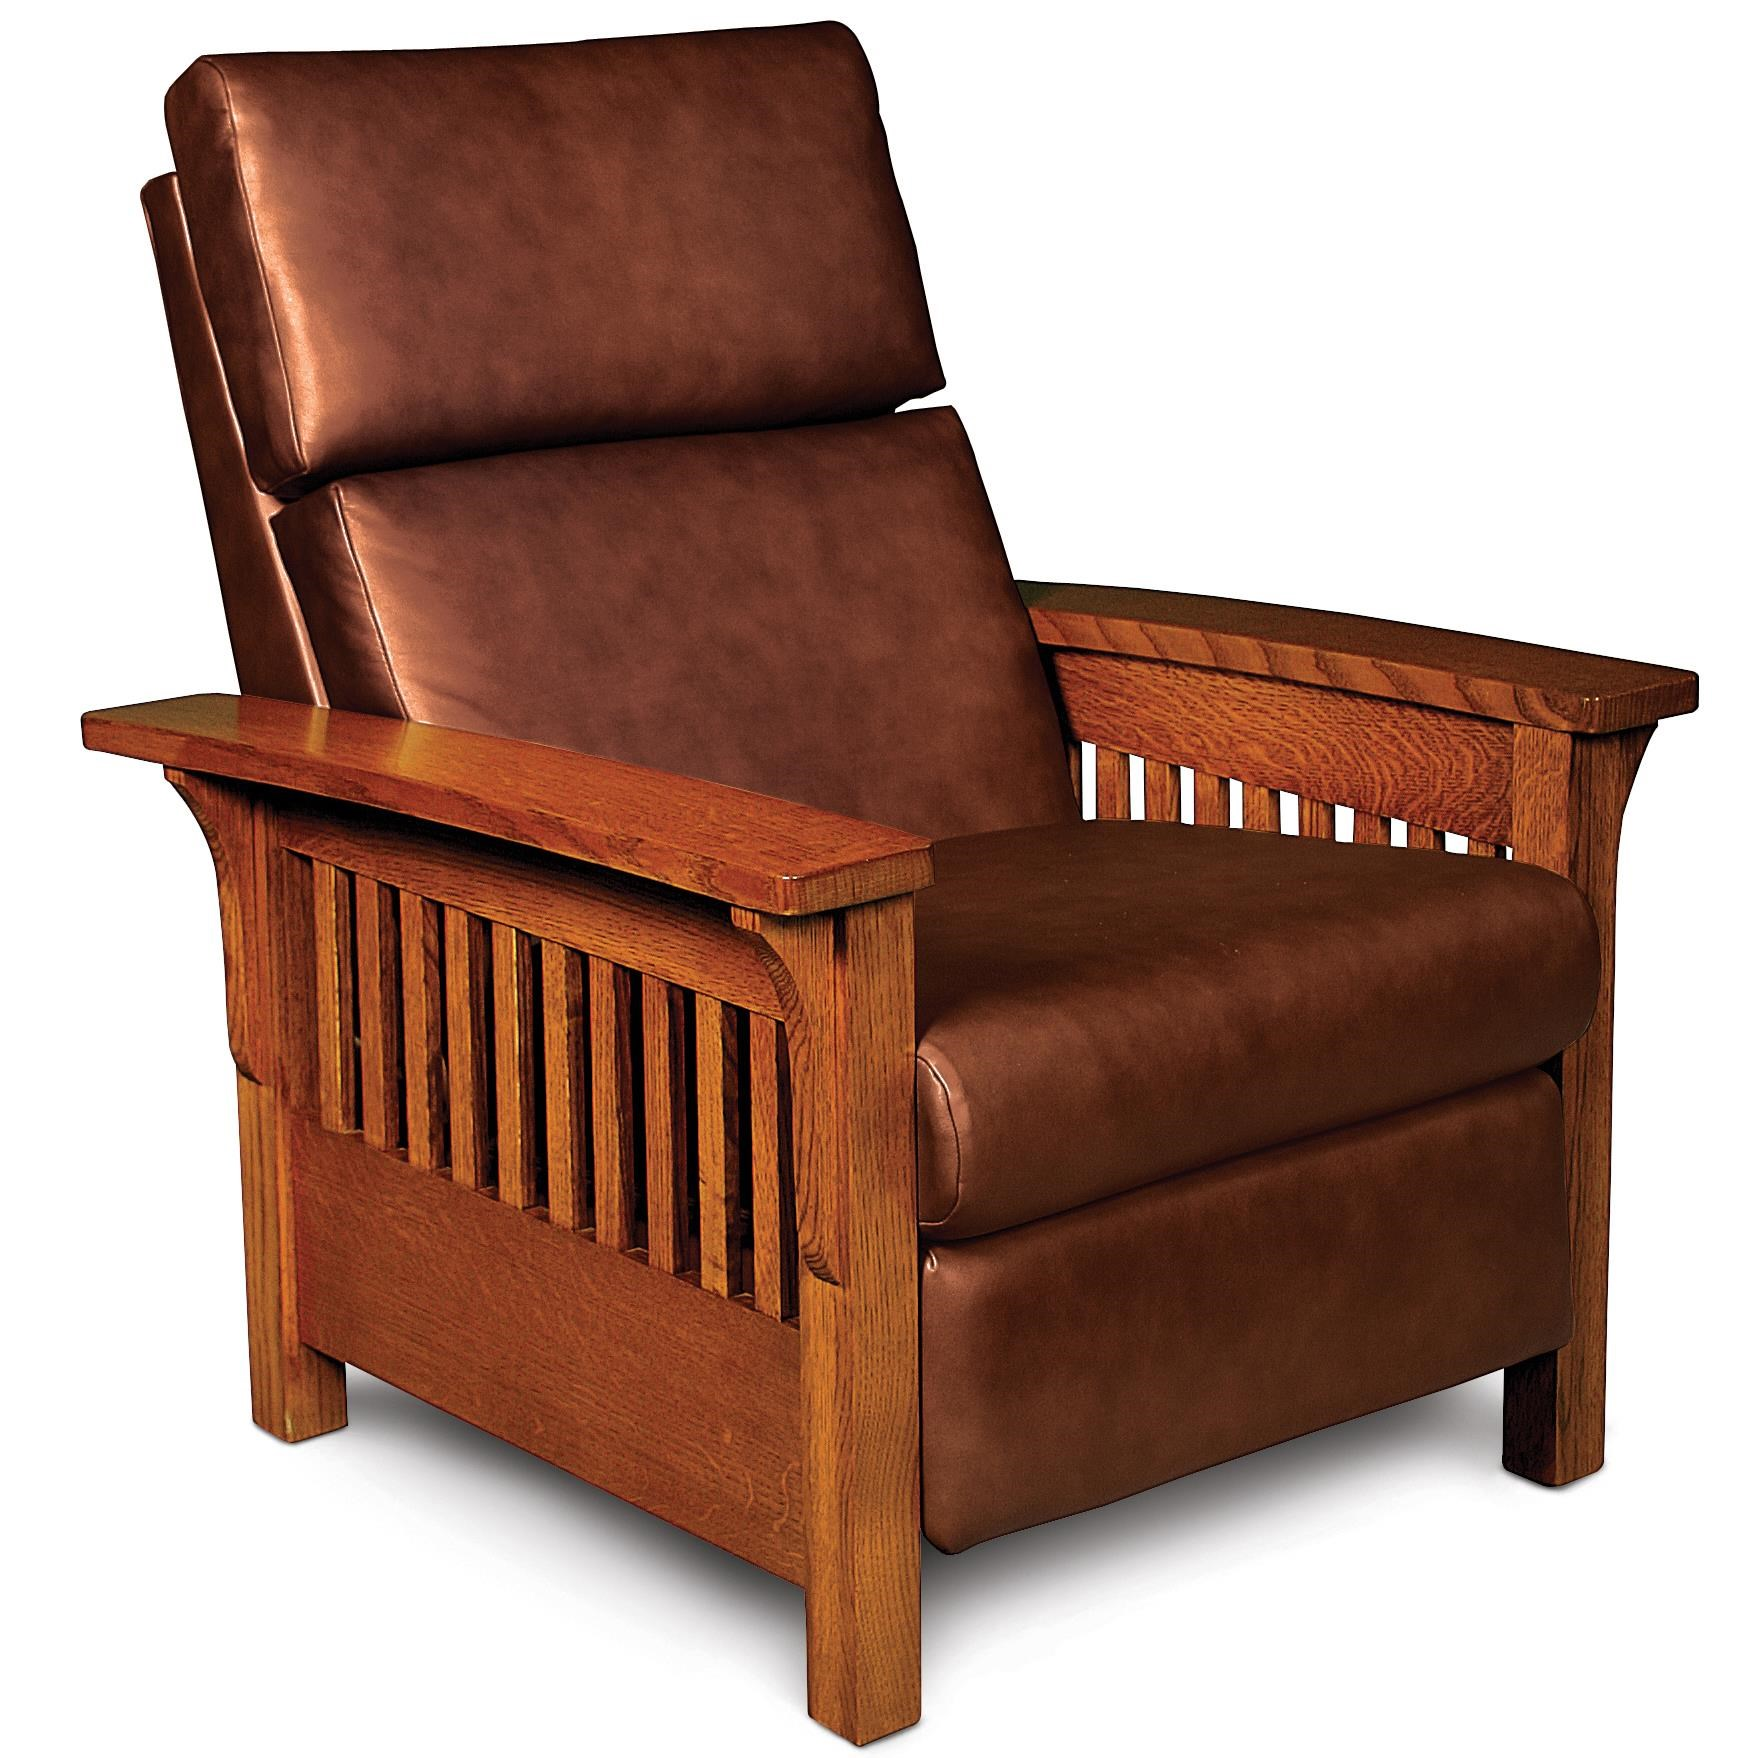 Simply Amish Grand Rapids High Leg Recliner with Wood Arms and Sides - Dunk u0026 Bright Furniture - High Leg Recliners  sc 1 st  Dunk u0026 Bright Furniture : wood arm recliner - islam-shia.org